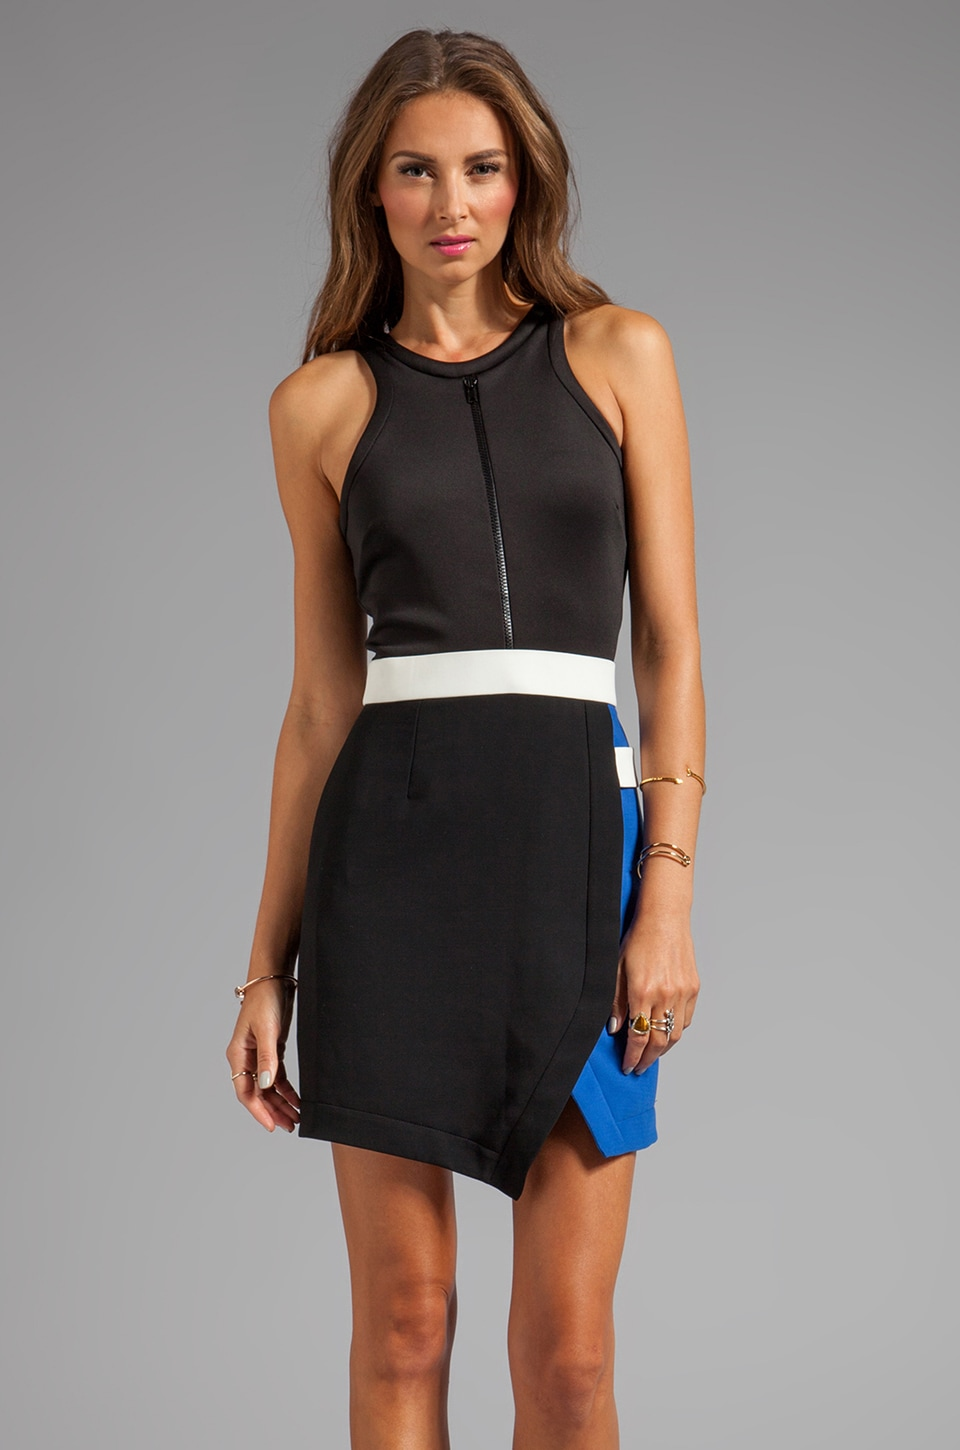 camilla and marc Iron Mystery Dress in Black/Blue/White